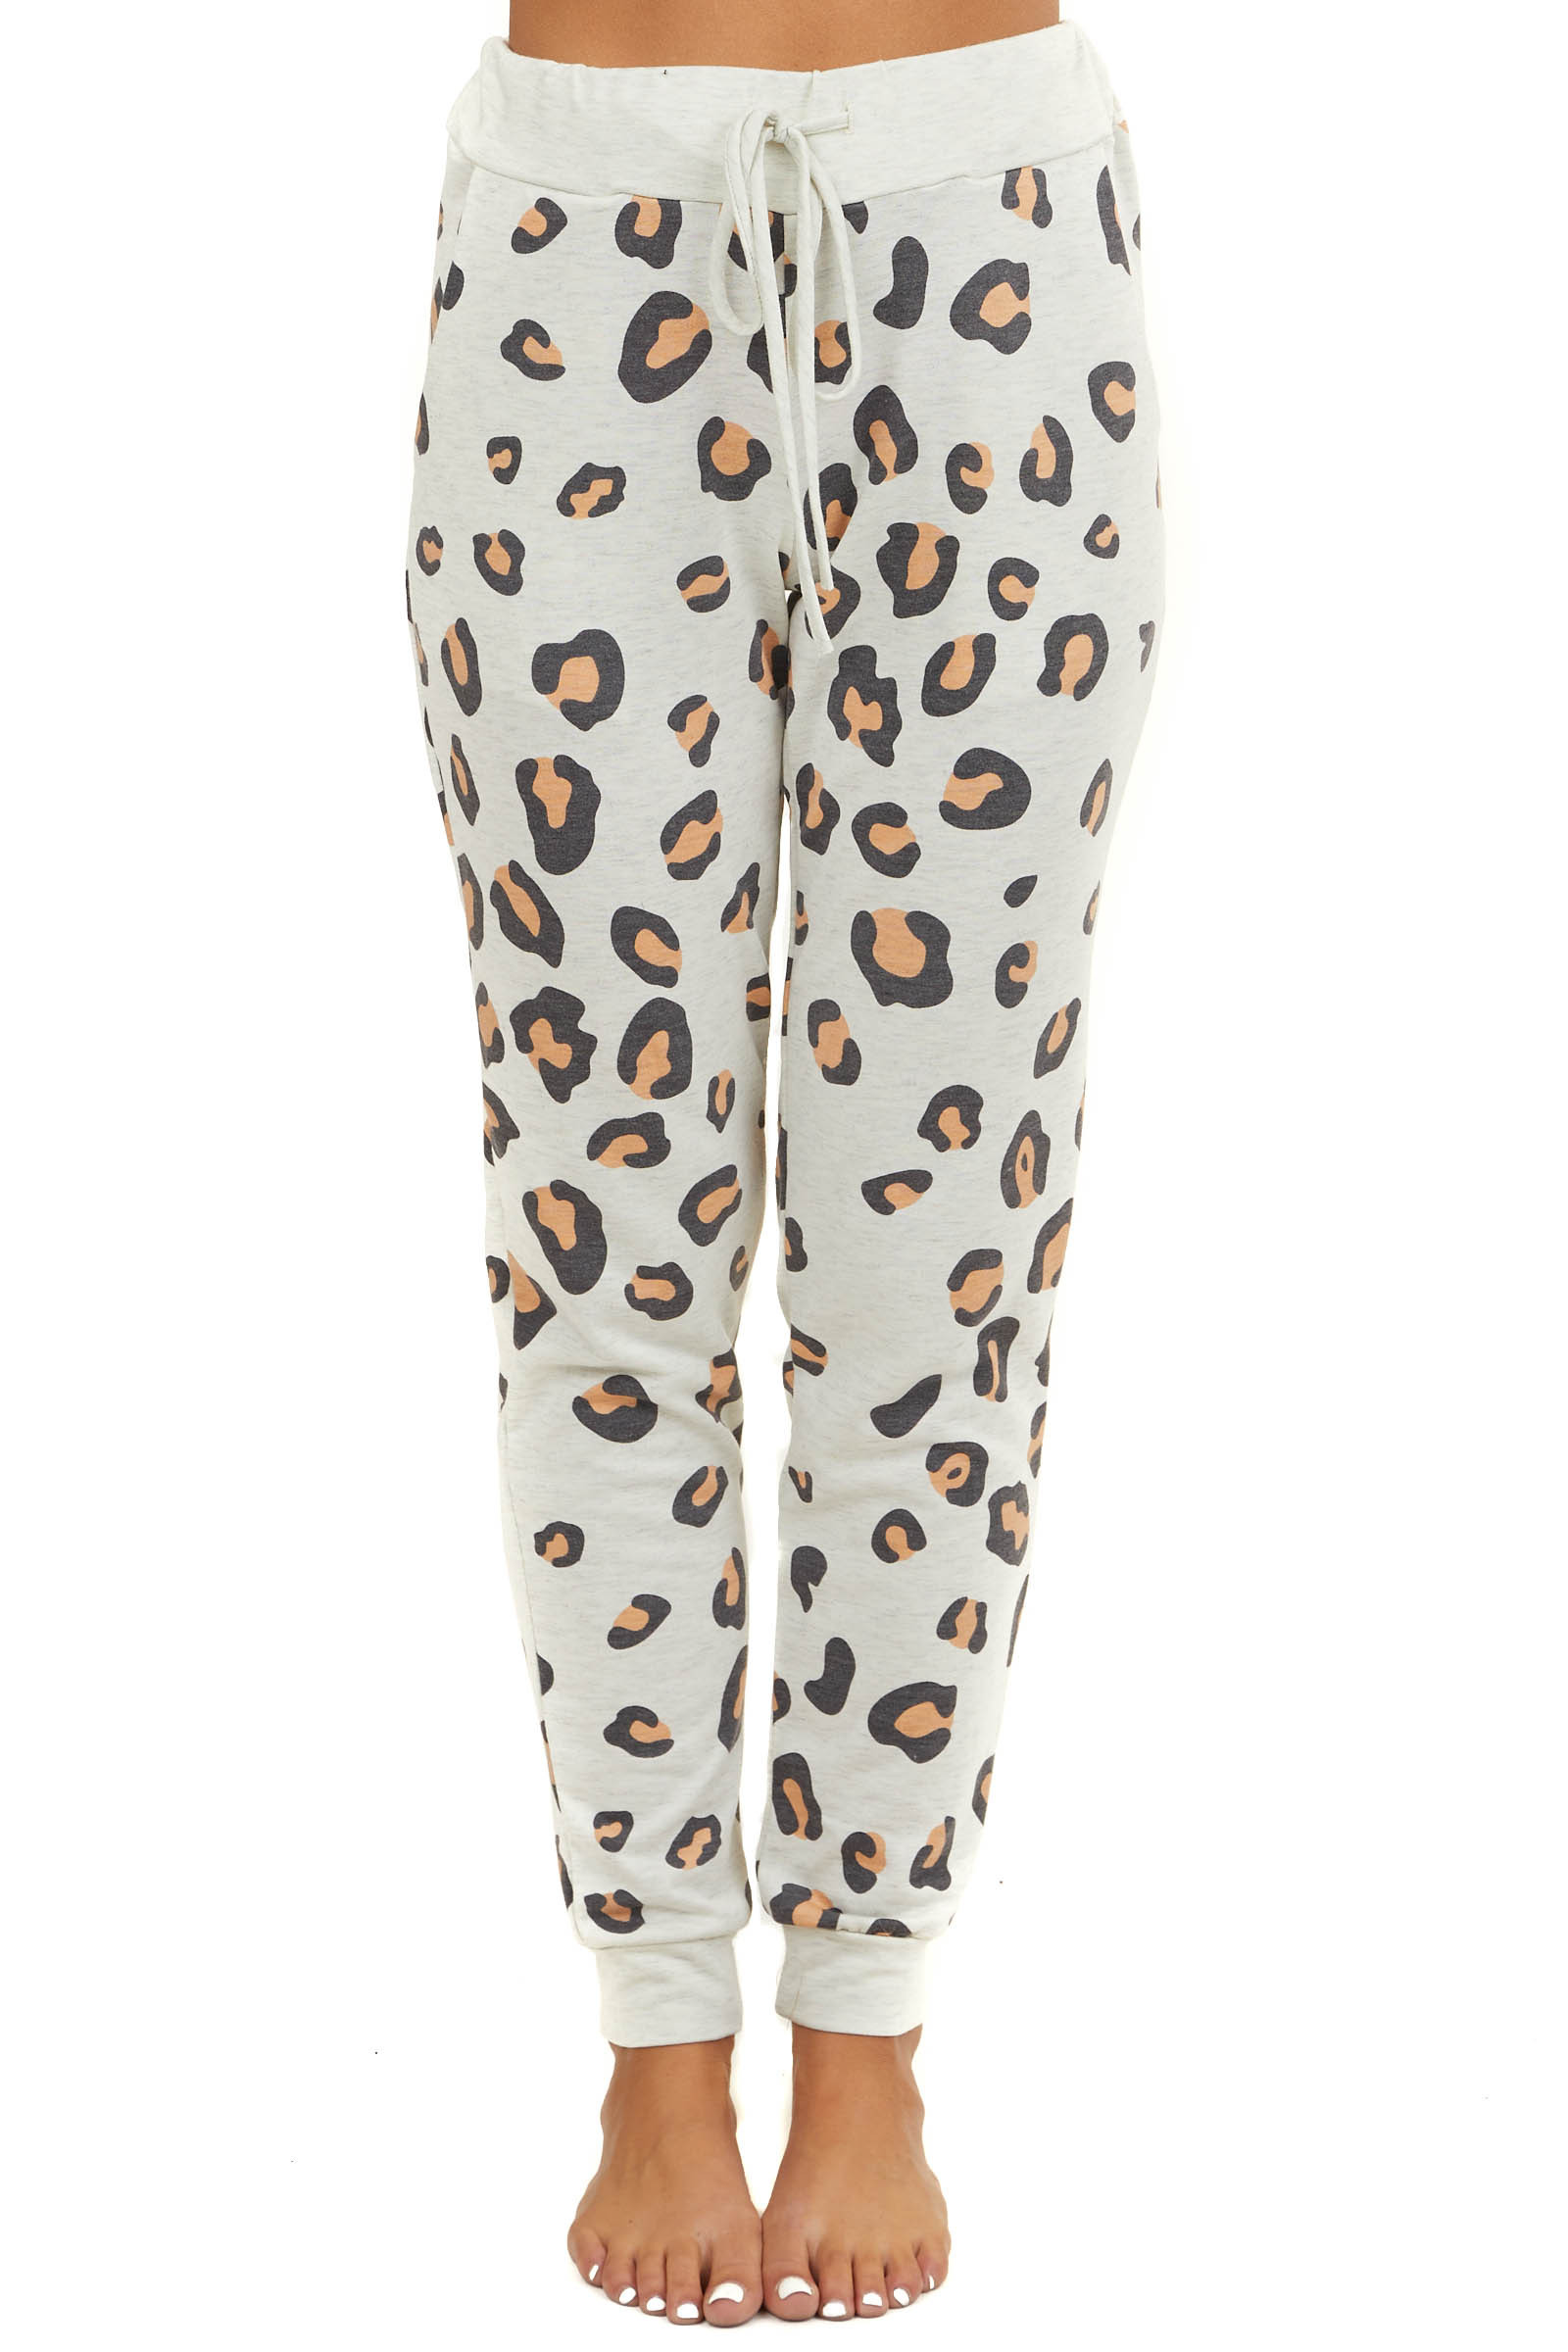 Cream Leopard Knit Joggers with Pockets and Waist Tie